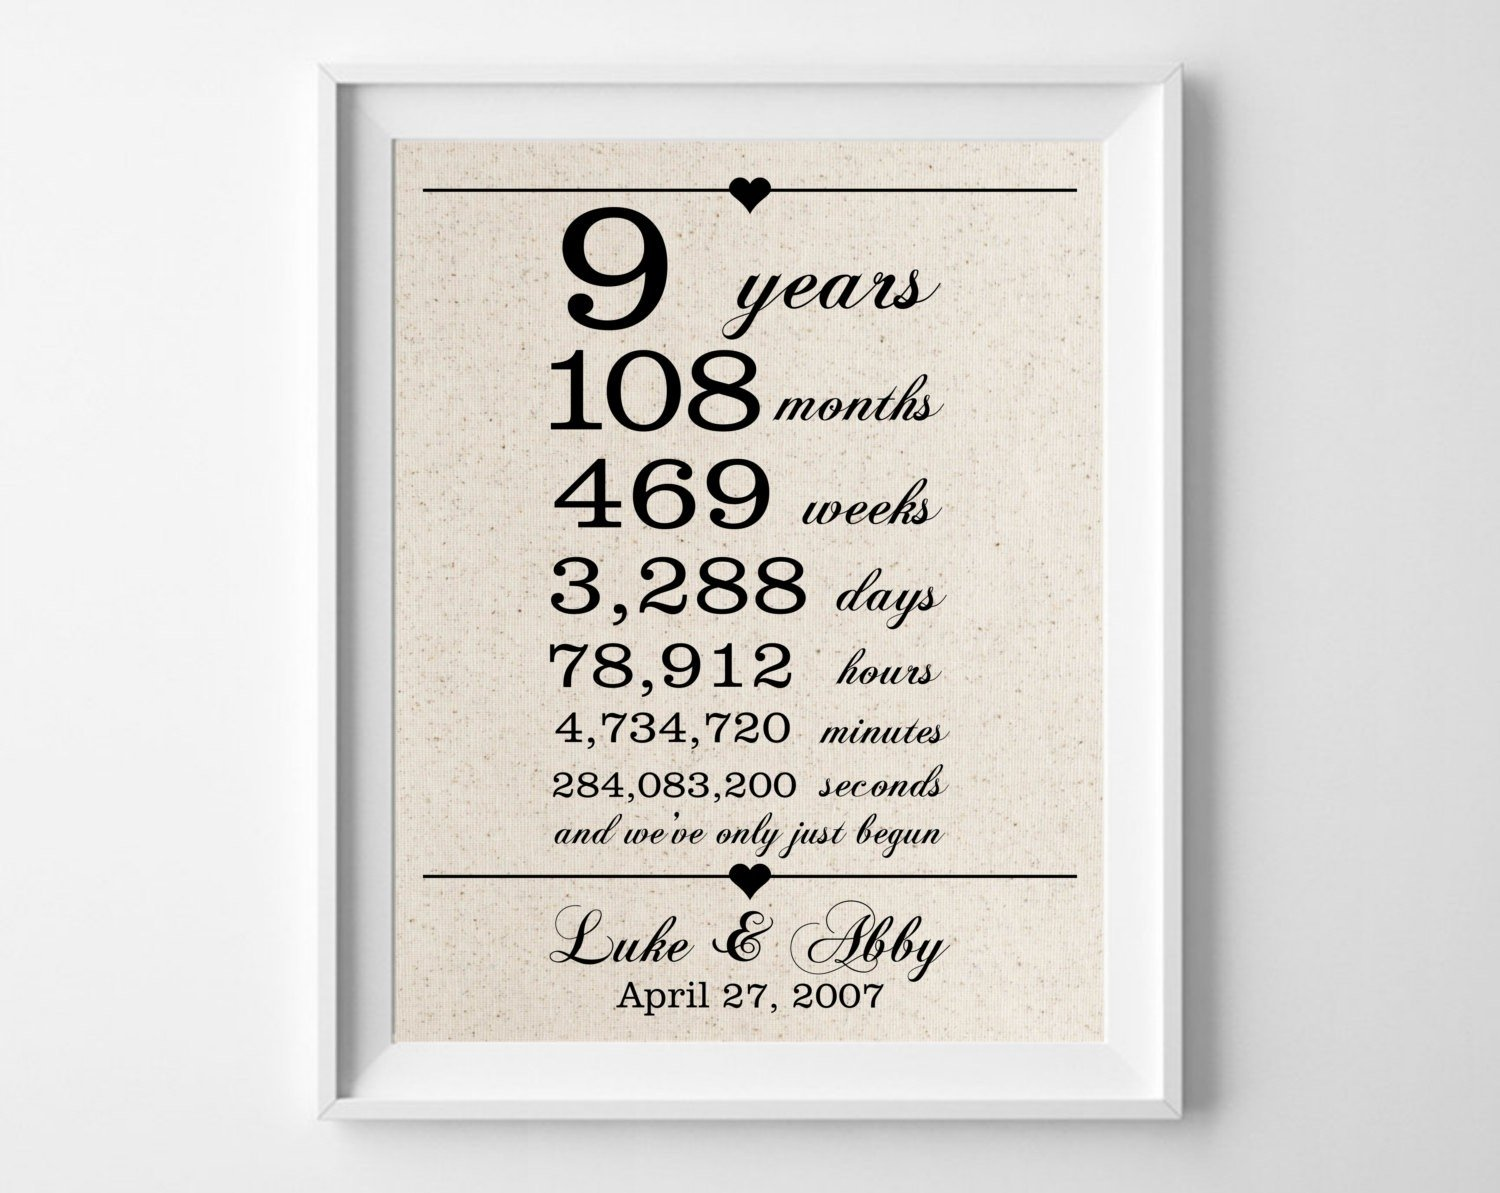 10 Stunning 9 Year Wedding Anniversary Gift Ideas elegant 9 year wedding anniversary gift ideas wedding gifts